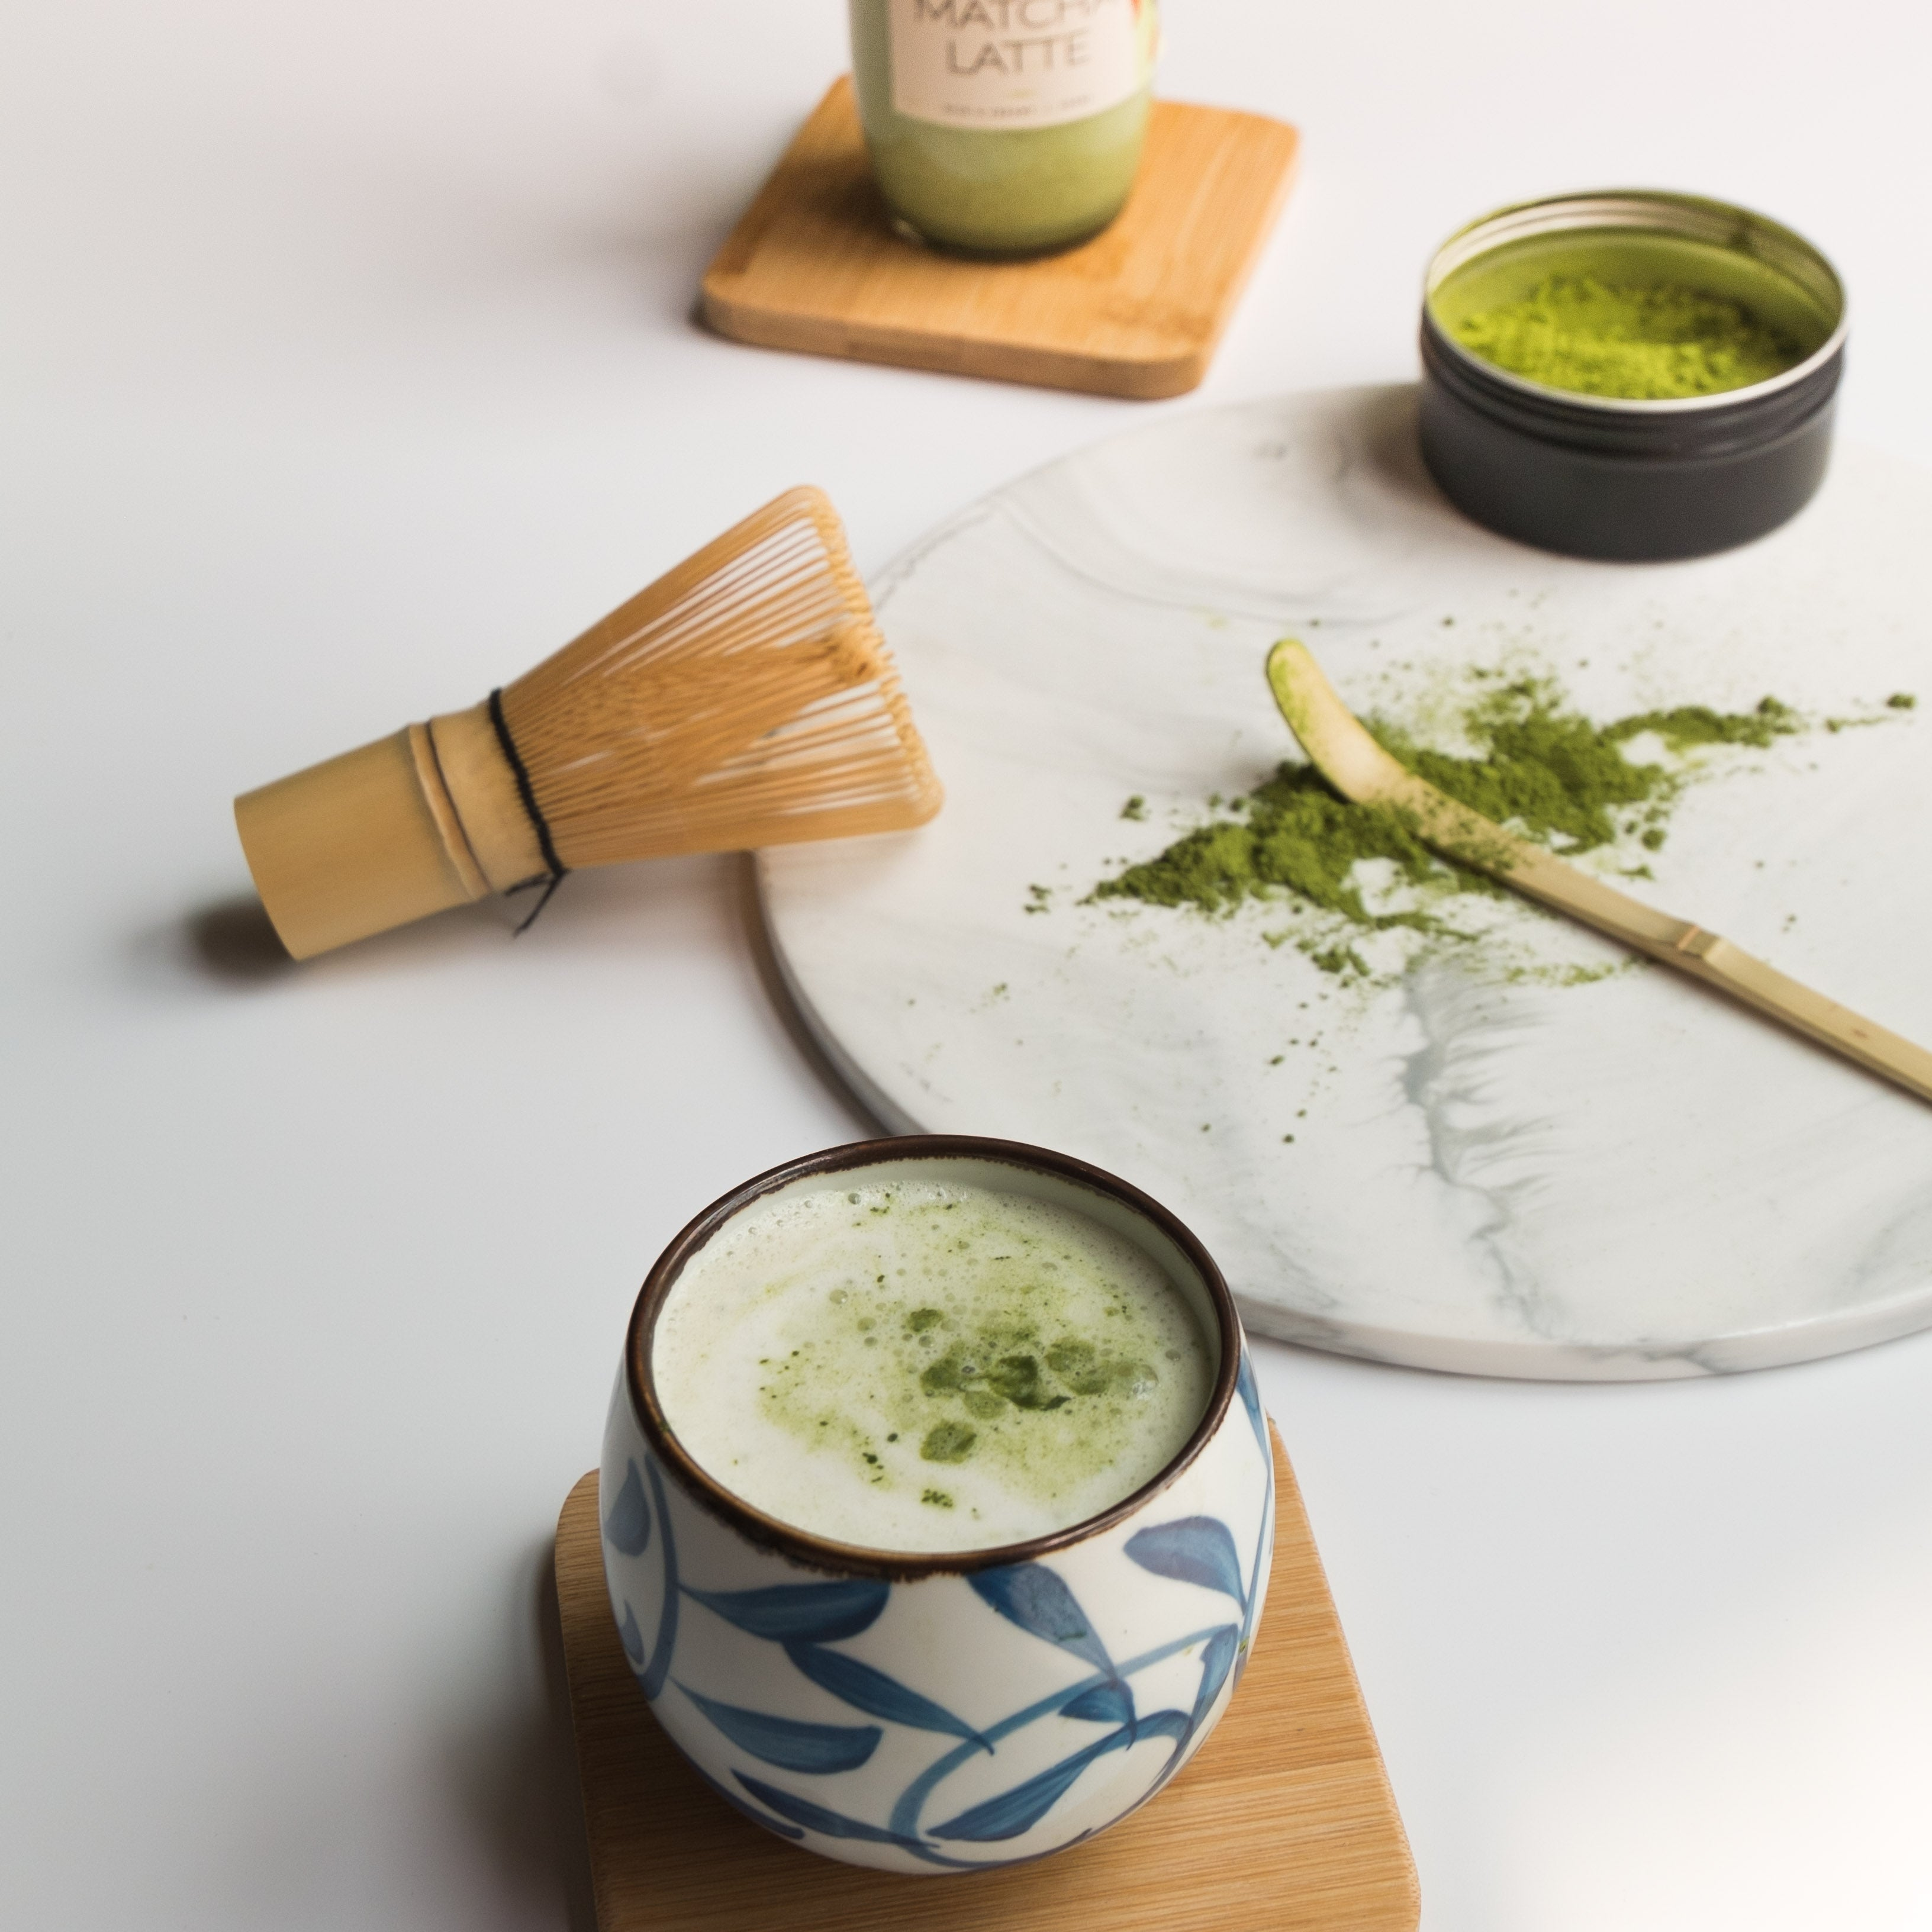 Whisking Matcha | Matcha vs Green Tea